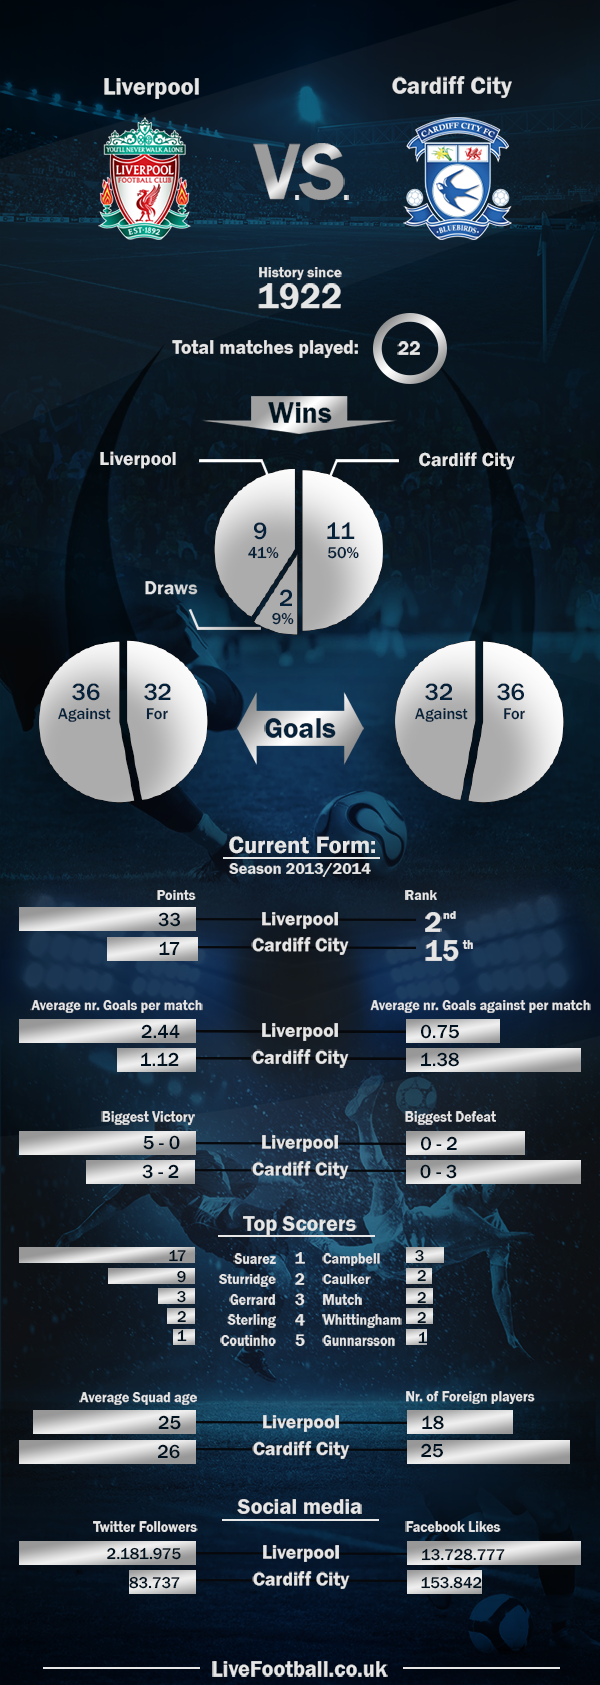 Liverpool-vs-Cardiff-City-LiveFootball.co.uk (1)